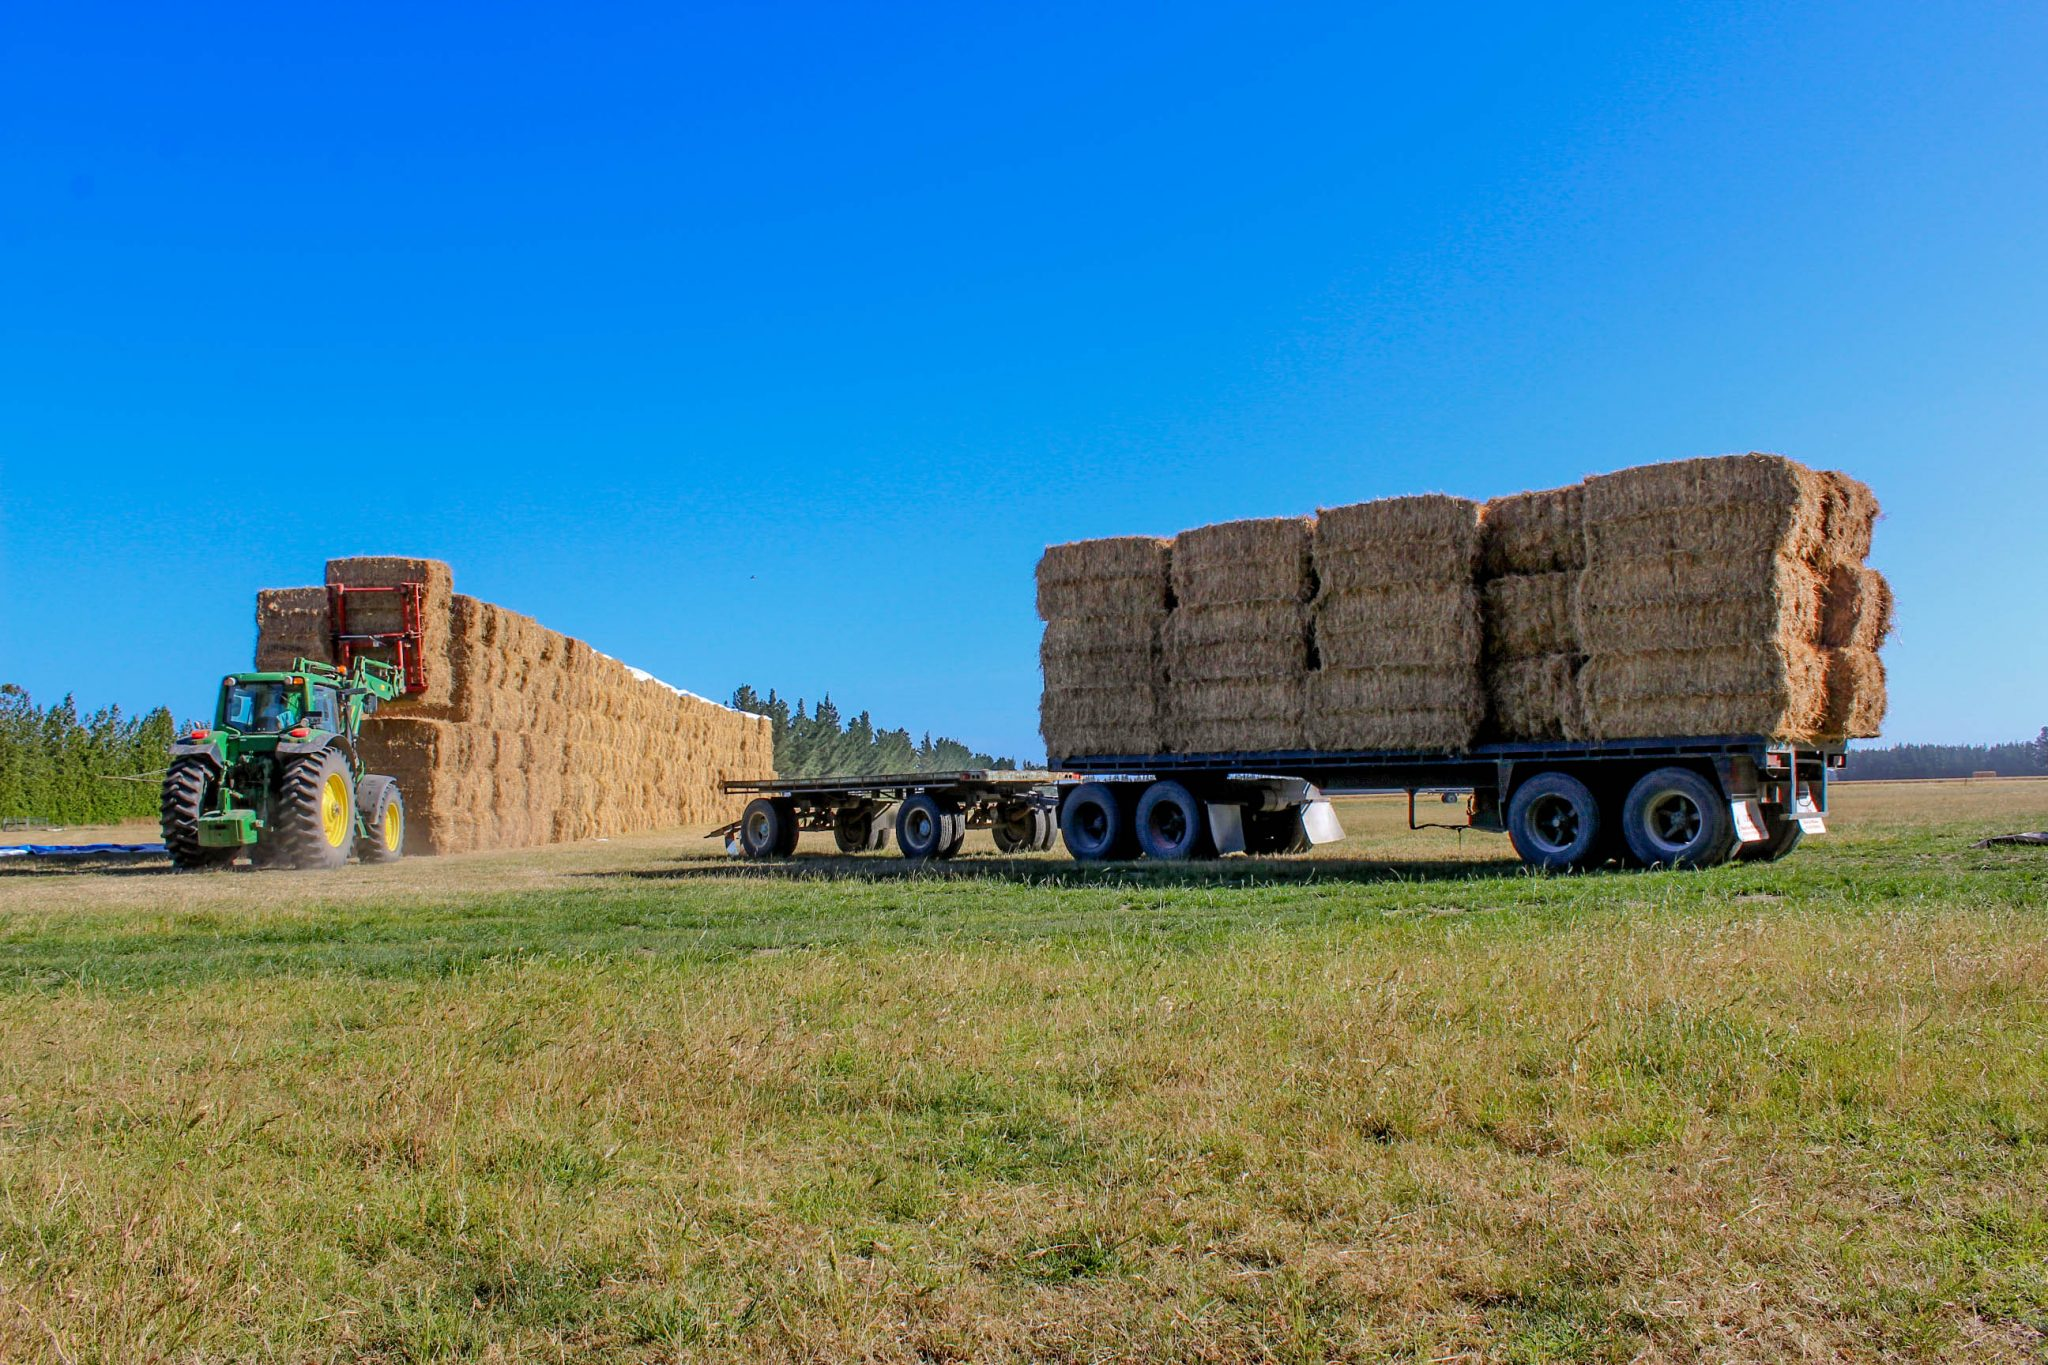 Loading Rye-grass straw into a stack ready for sale